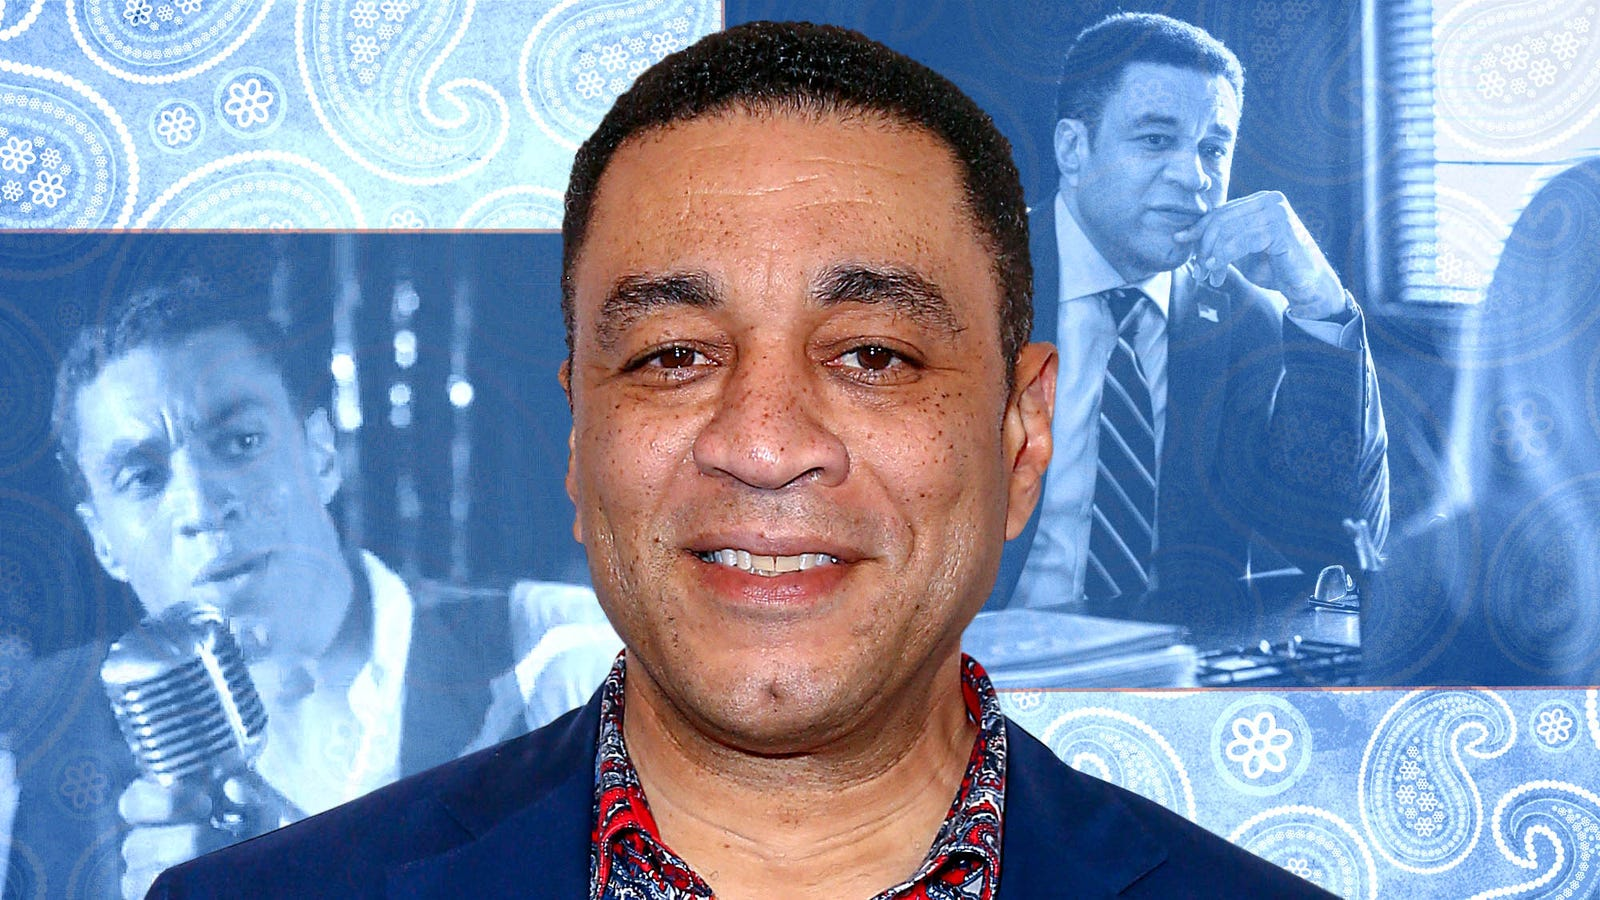 Harry Lennix has Superman anecdotes involving Henry Cavill and Gene Hackman